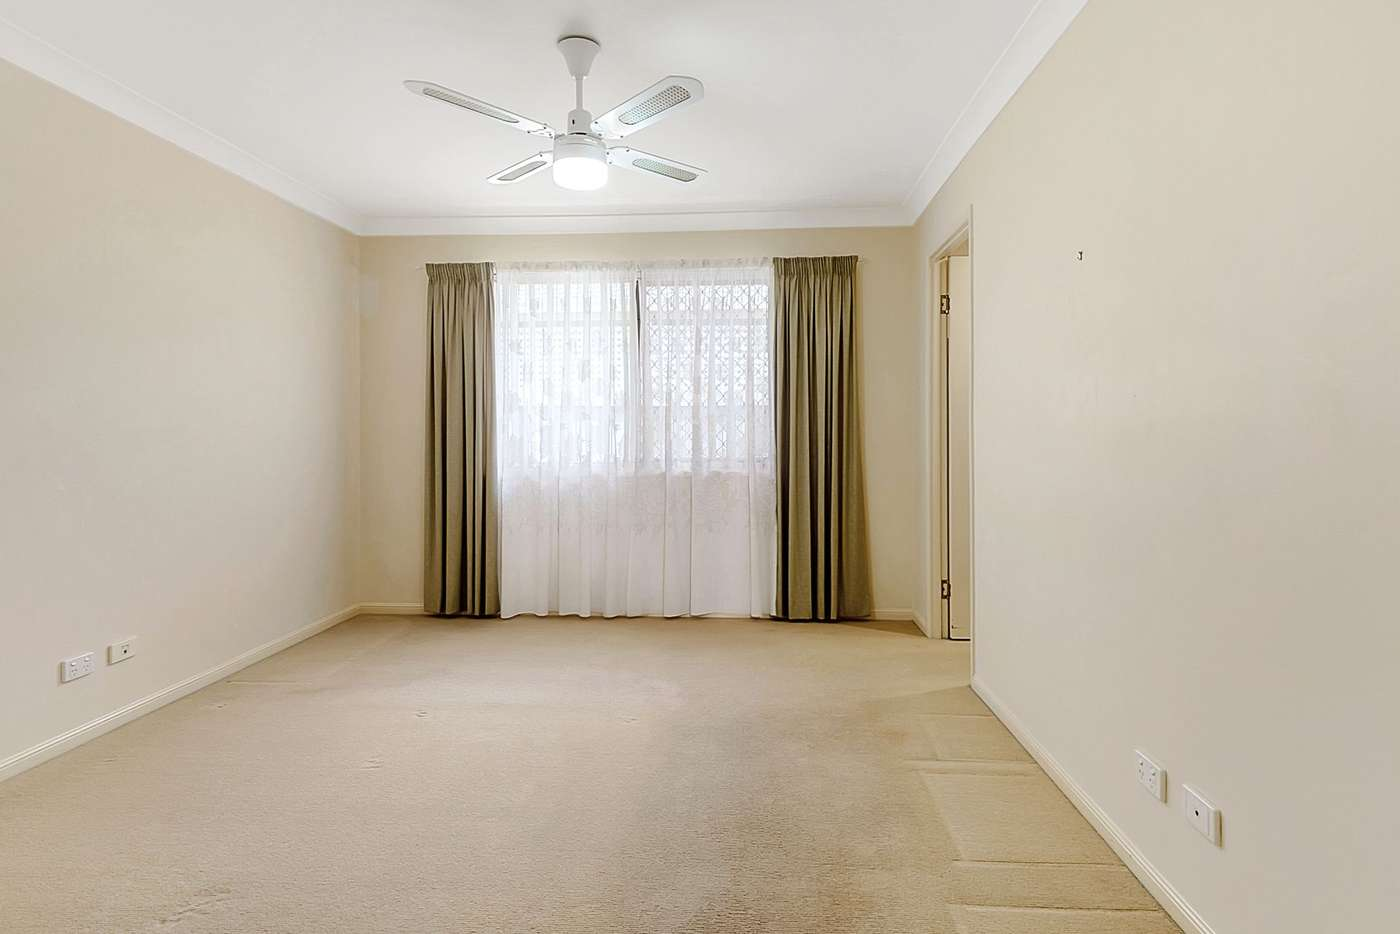 Sixth view of Homely house listing, 63 Carinyan Drive, Birkdale QLD 4159